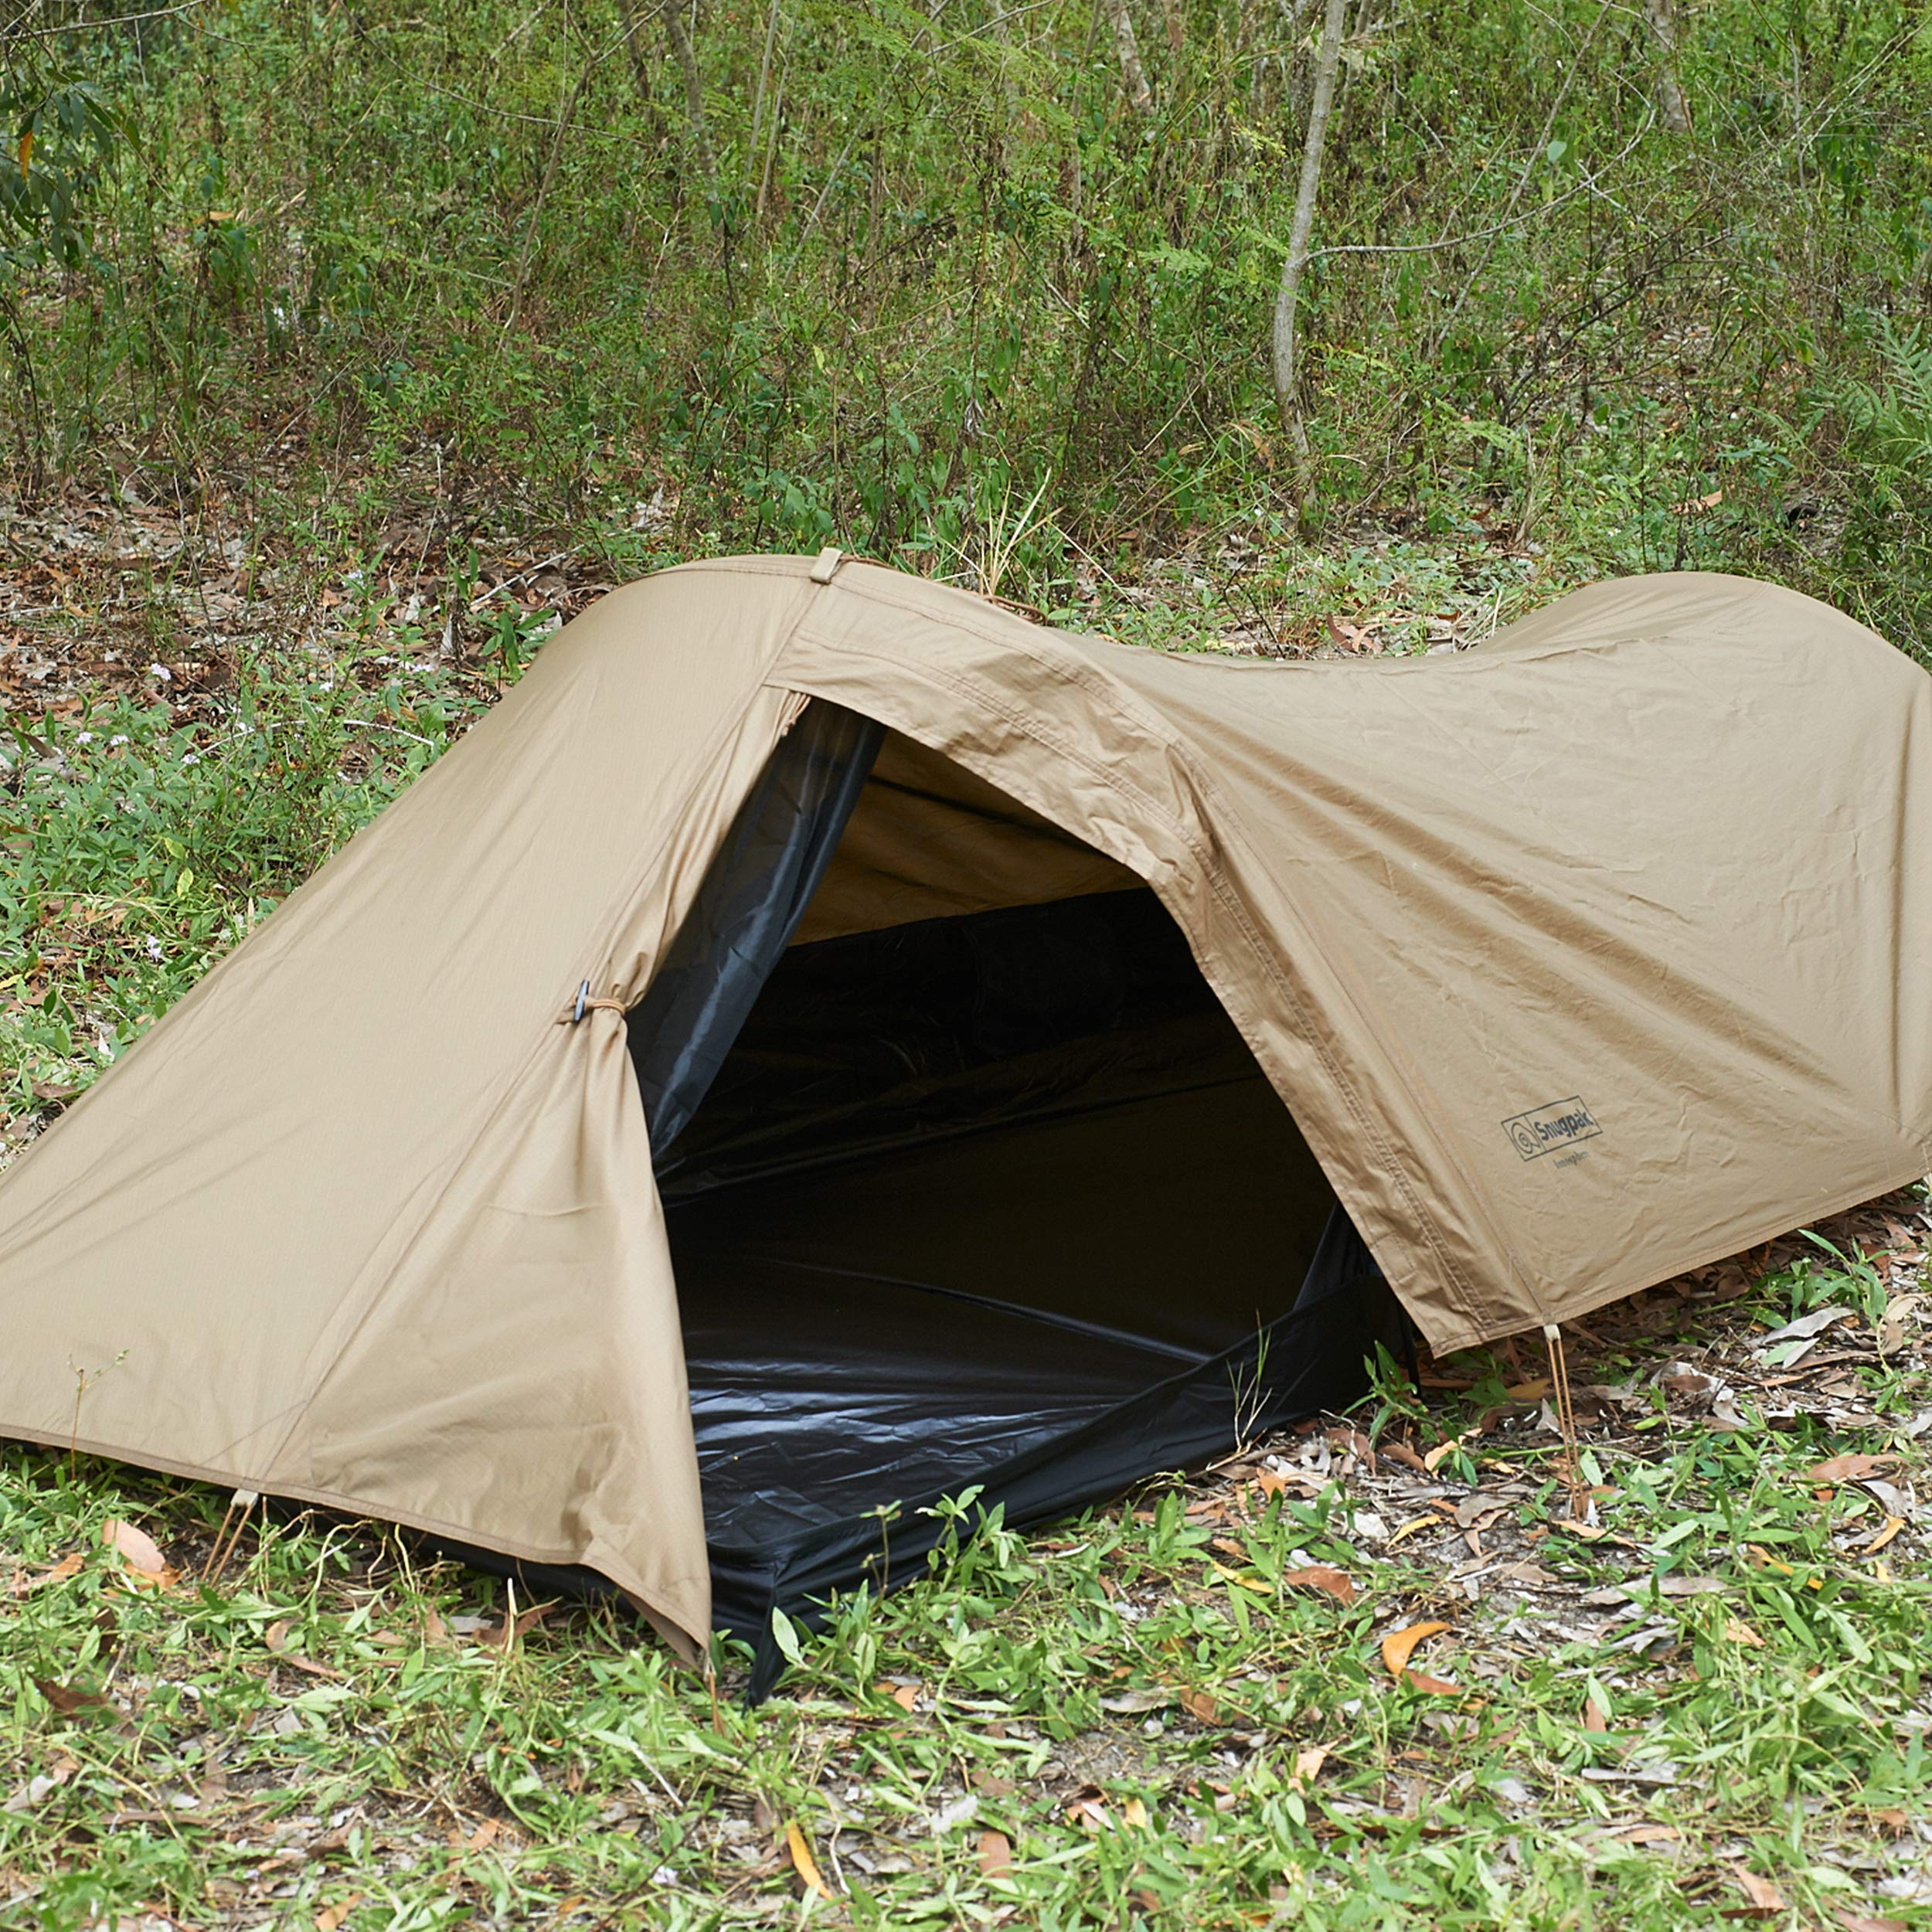 Snugpak Ionosphere 1 Person Tent, 94 inches x 35 inches x 28 inches, Waterproof Polyester and Nylon, Coyote Tan by Snugpak